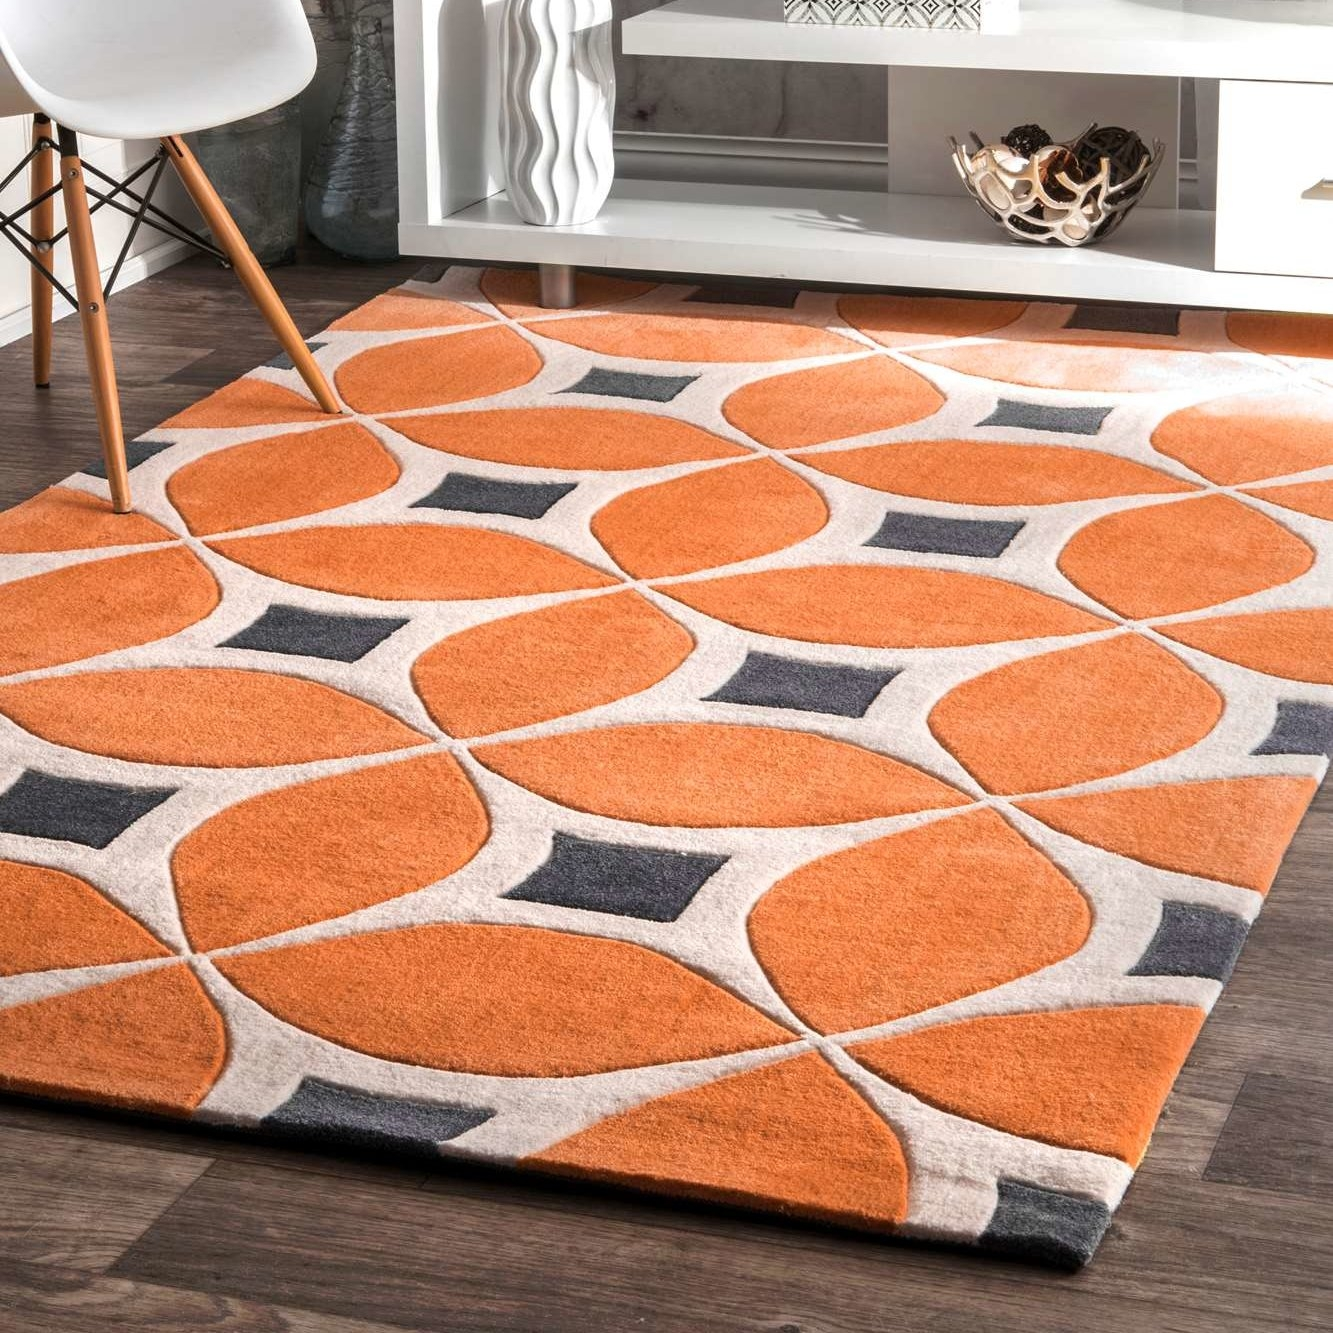 Anya Orange Area Rug Reviews Joss Main In Orange Floor Rugs (Image 1 of 15)